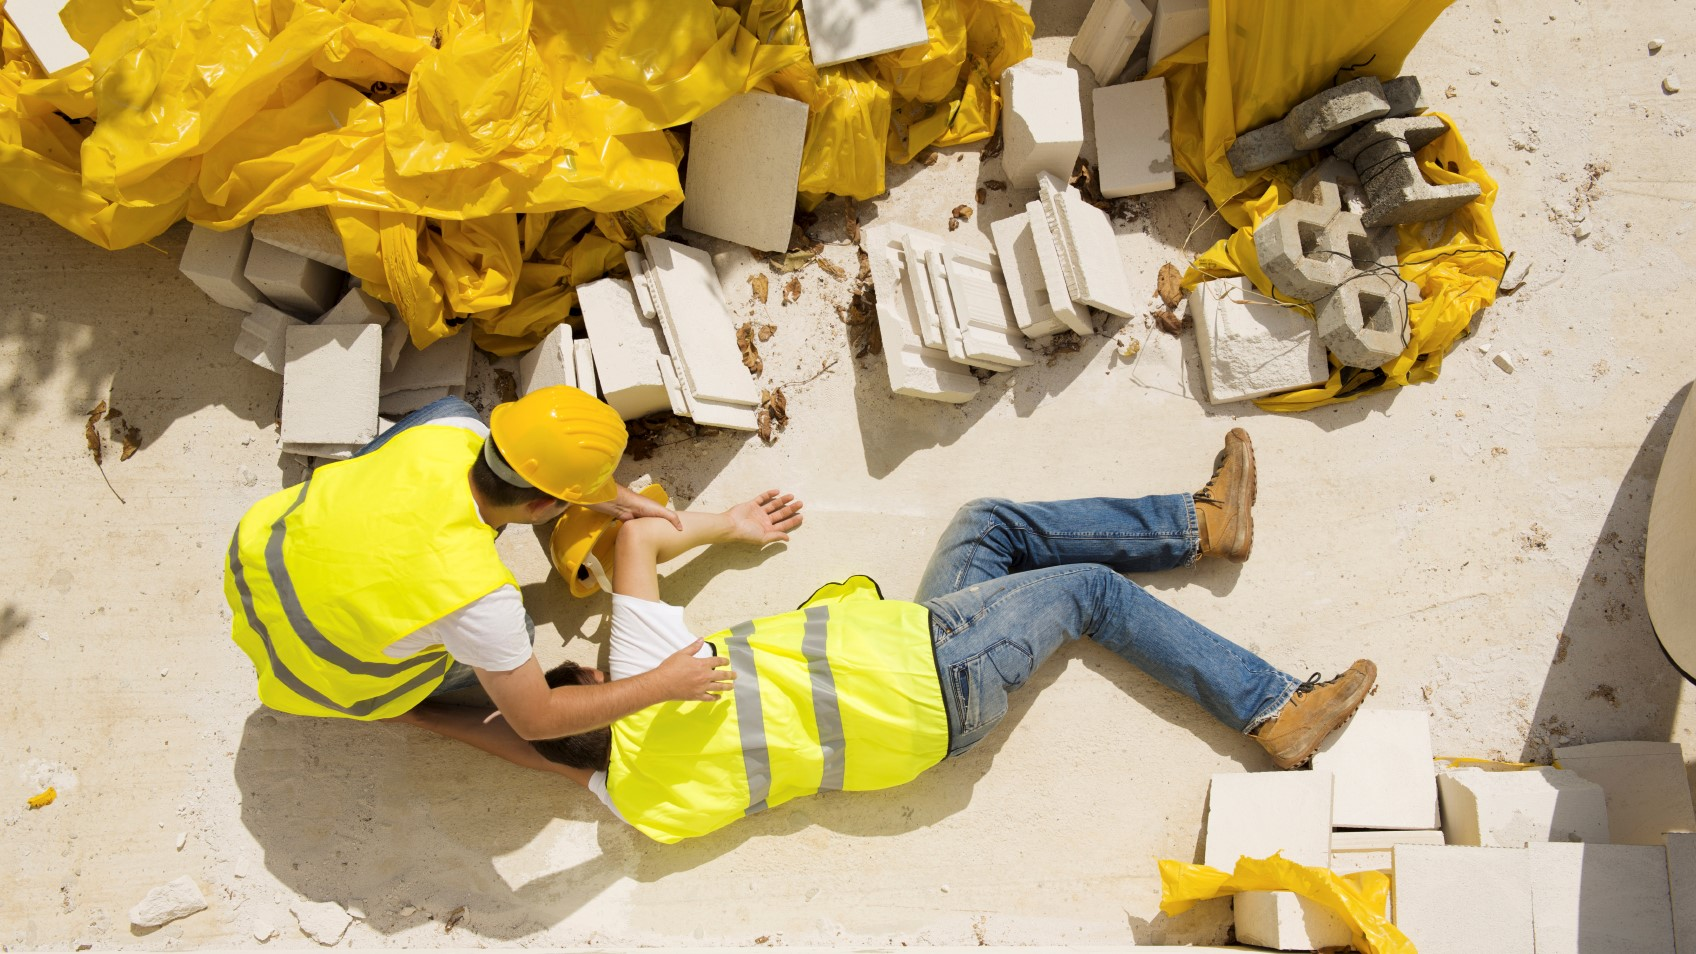 Construction worker has an accident that could be prevented with good OSHA training